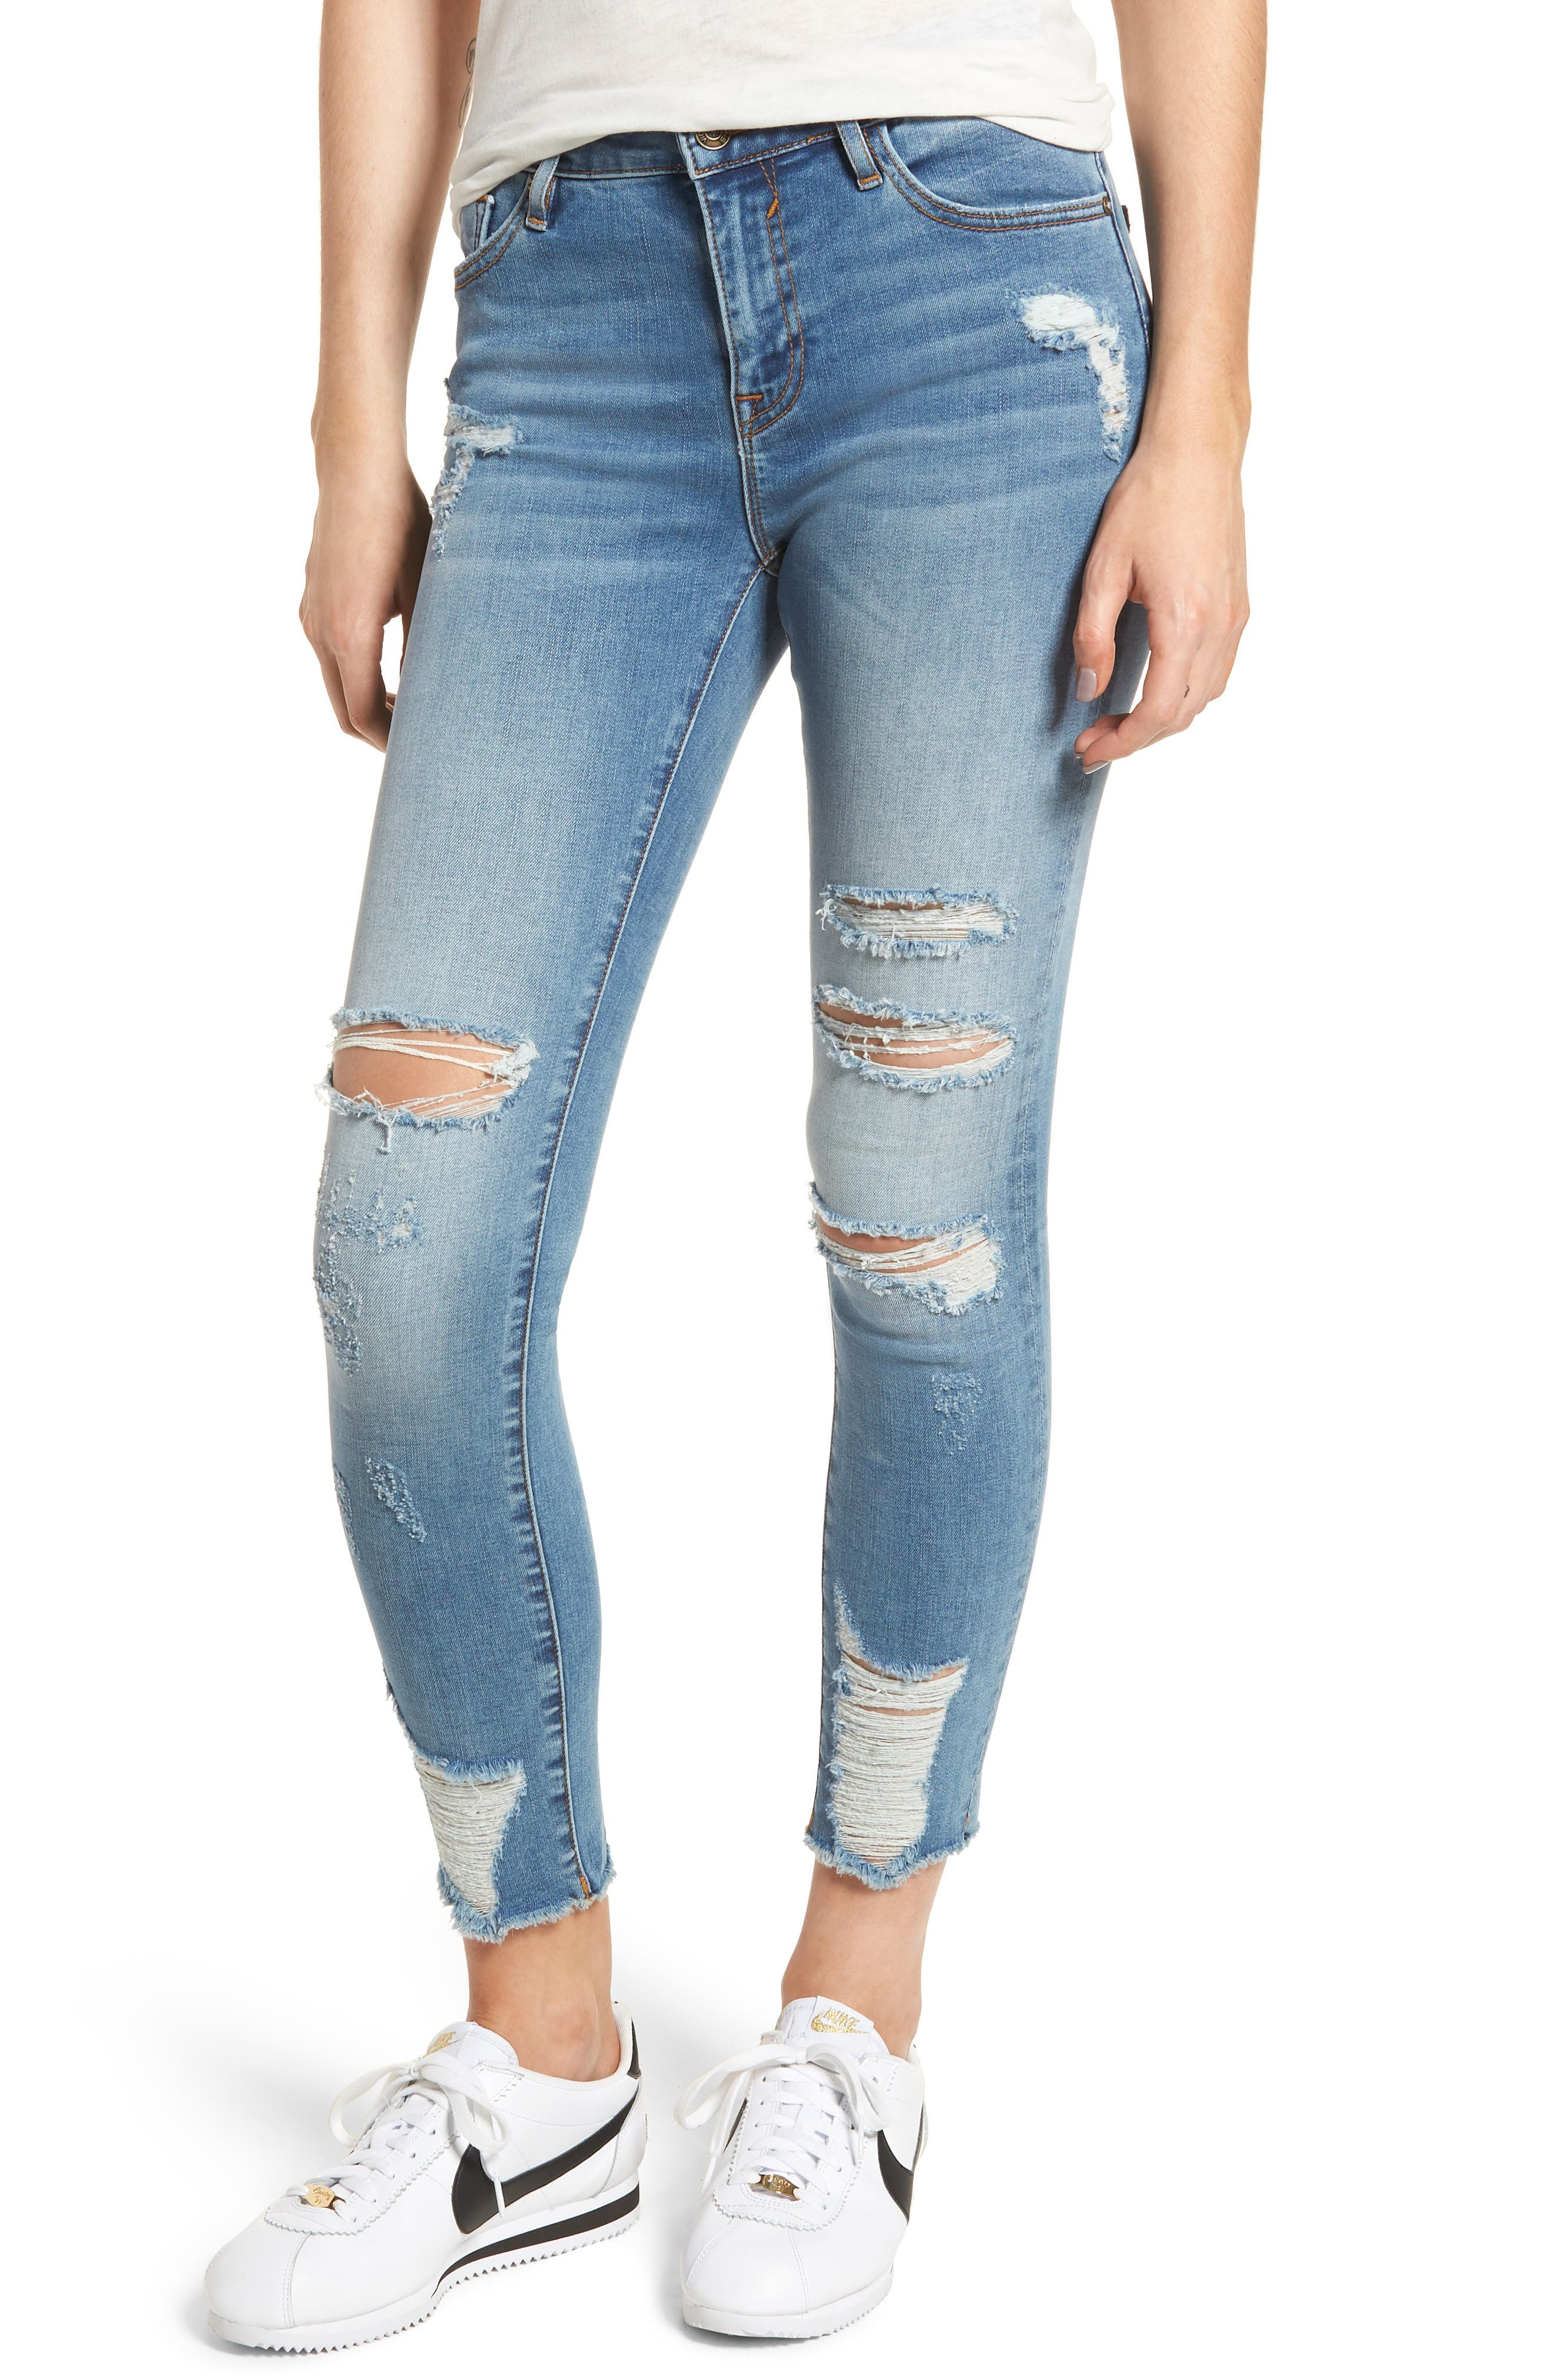 Marley Distressed Skinny Jeans,                         Main,                         color, Medium Wash